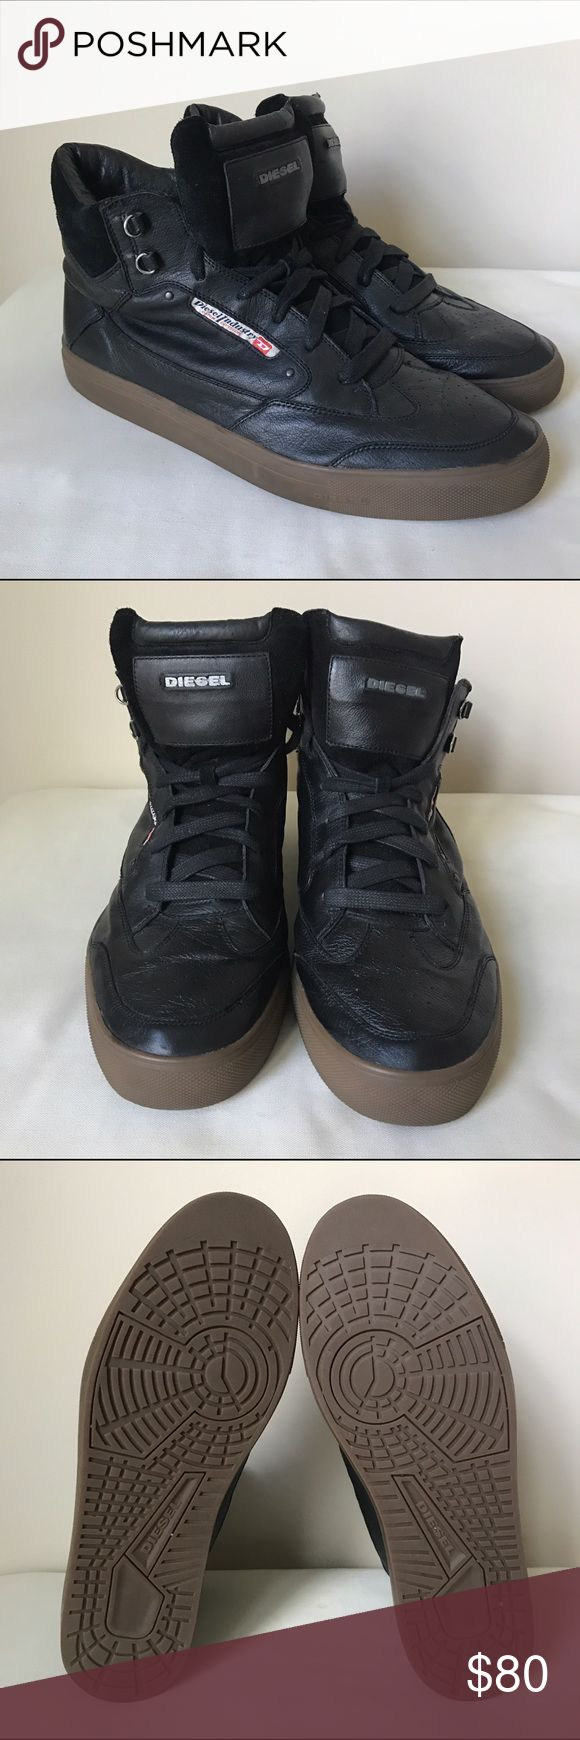 DIESEL Men's High Top Sneakers in Black DIESEL Men's High Top Sneakers in black leather/Suede. Good used condition Diesel Shoes Sneakers